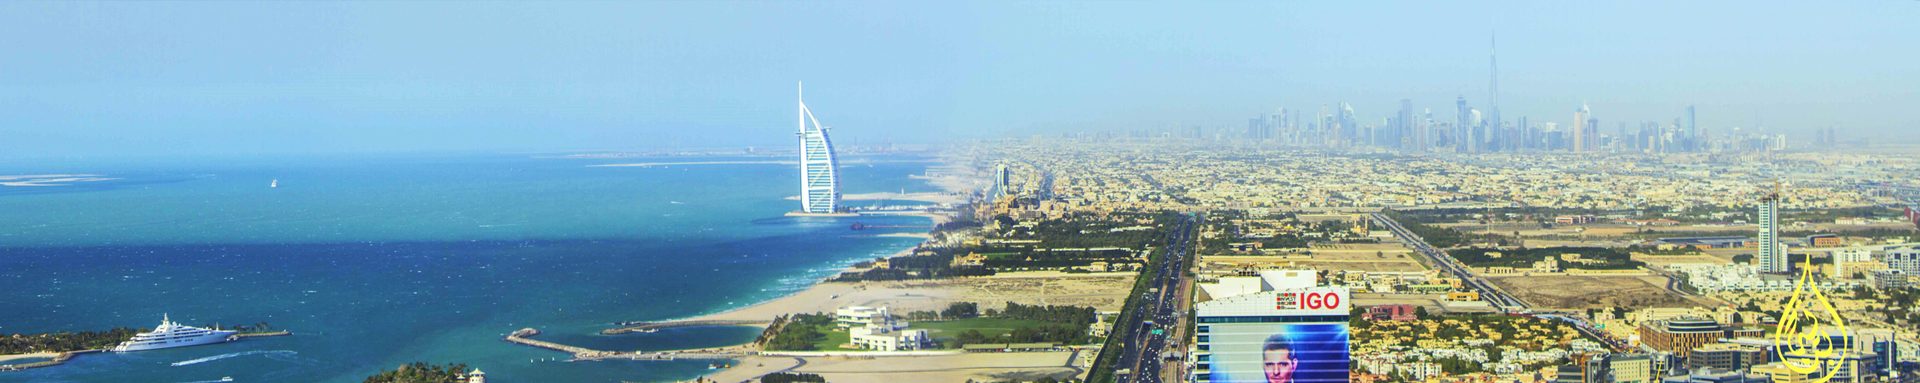 Pearl Jumeirah Island Apartment or Villa for Sale and Rent in Dubai